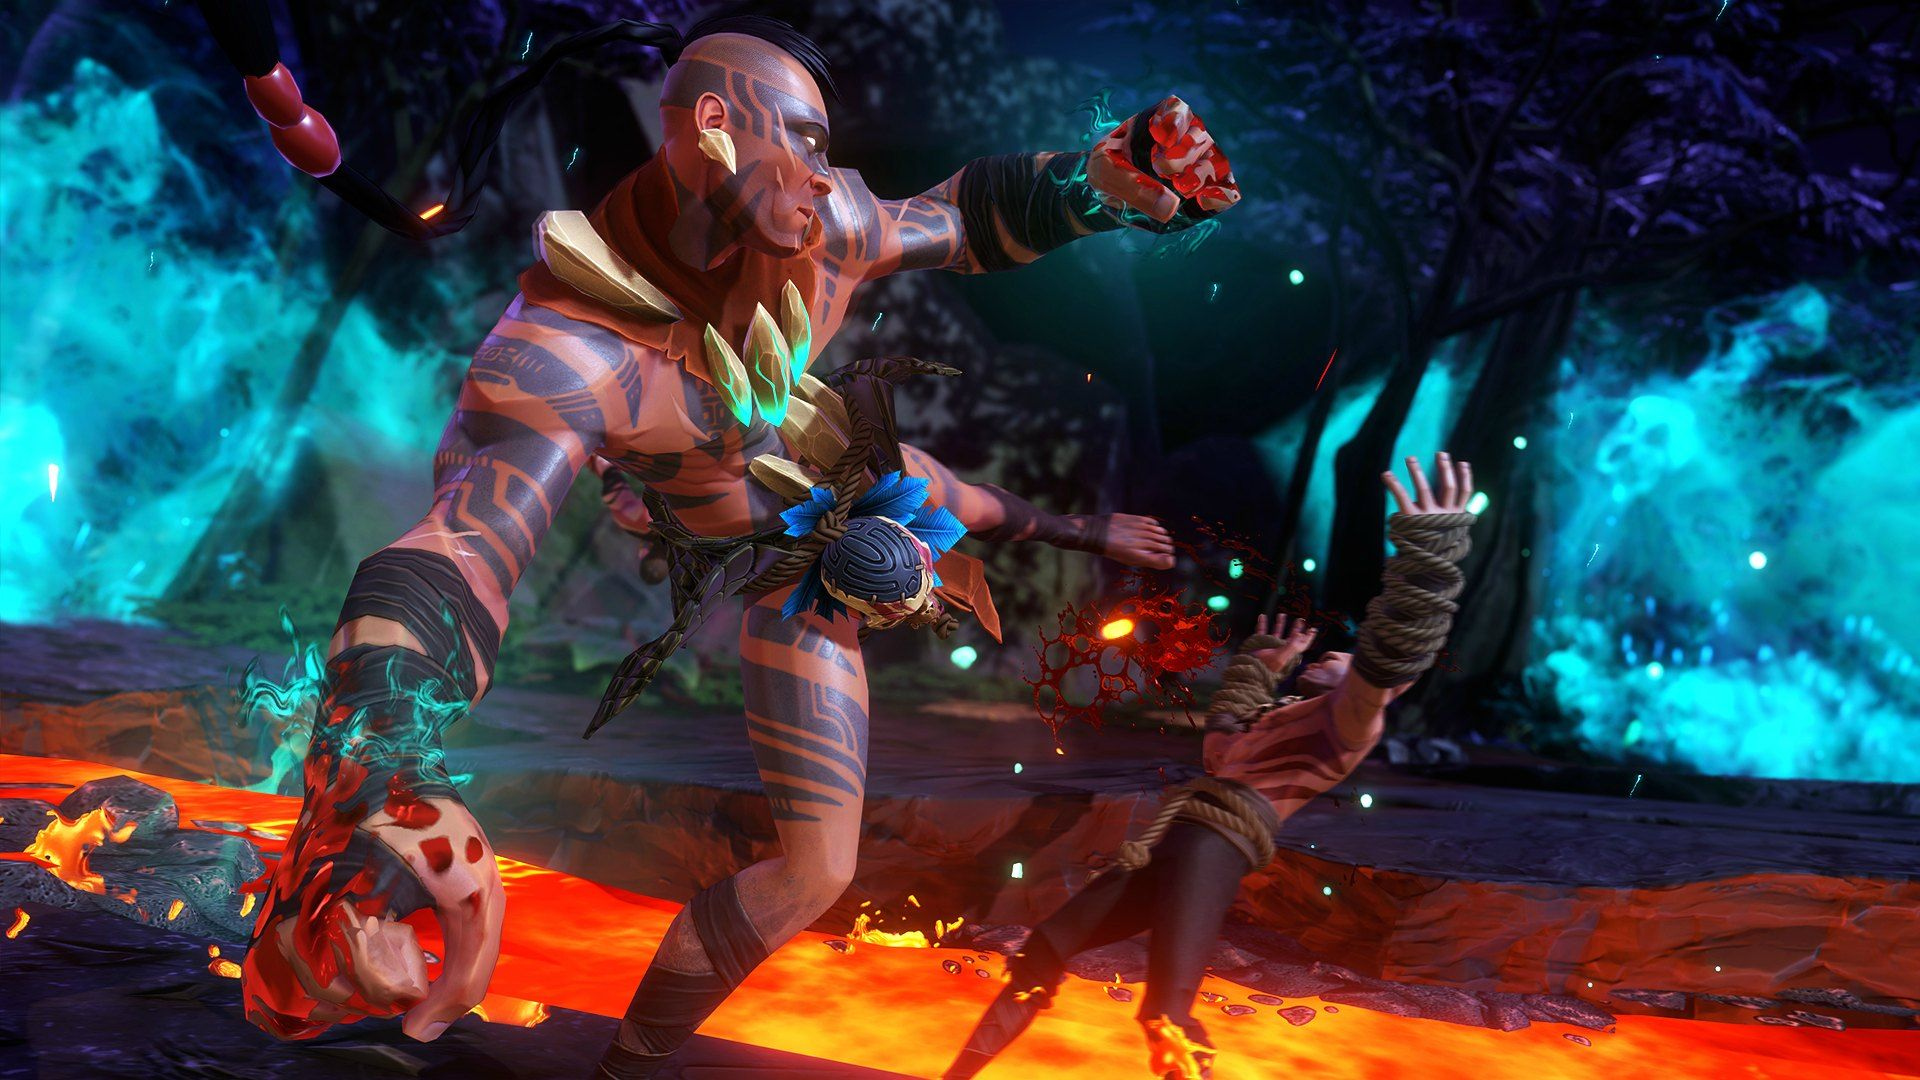 We review 'Feral Rites' on the Oculus Rift, a virtual